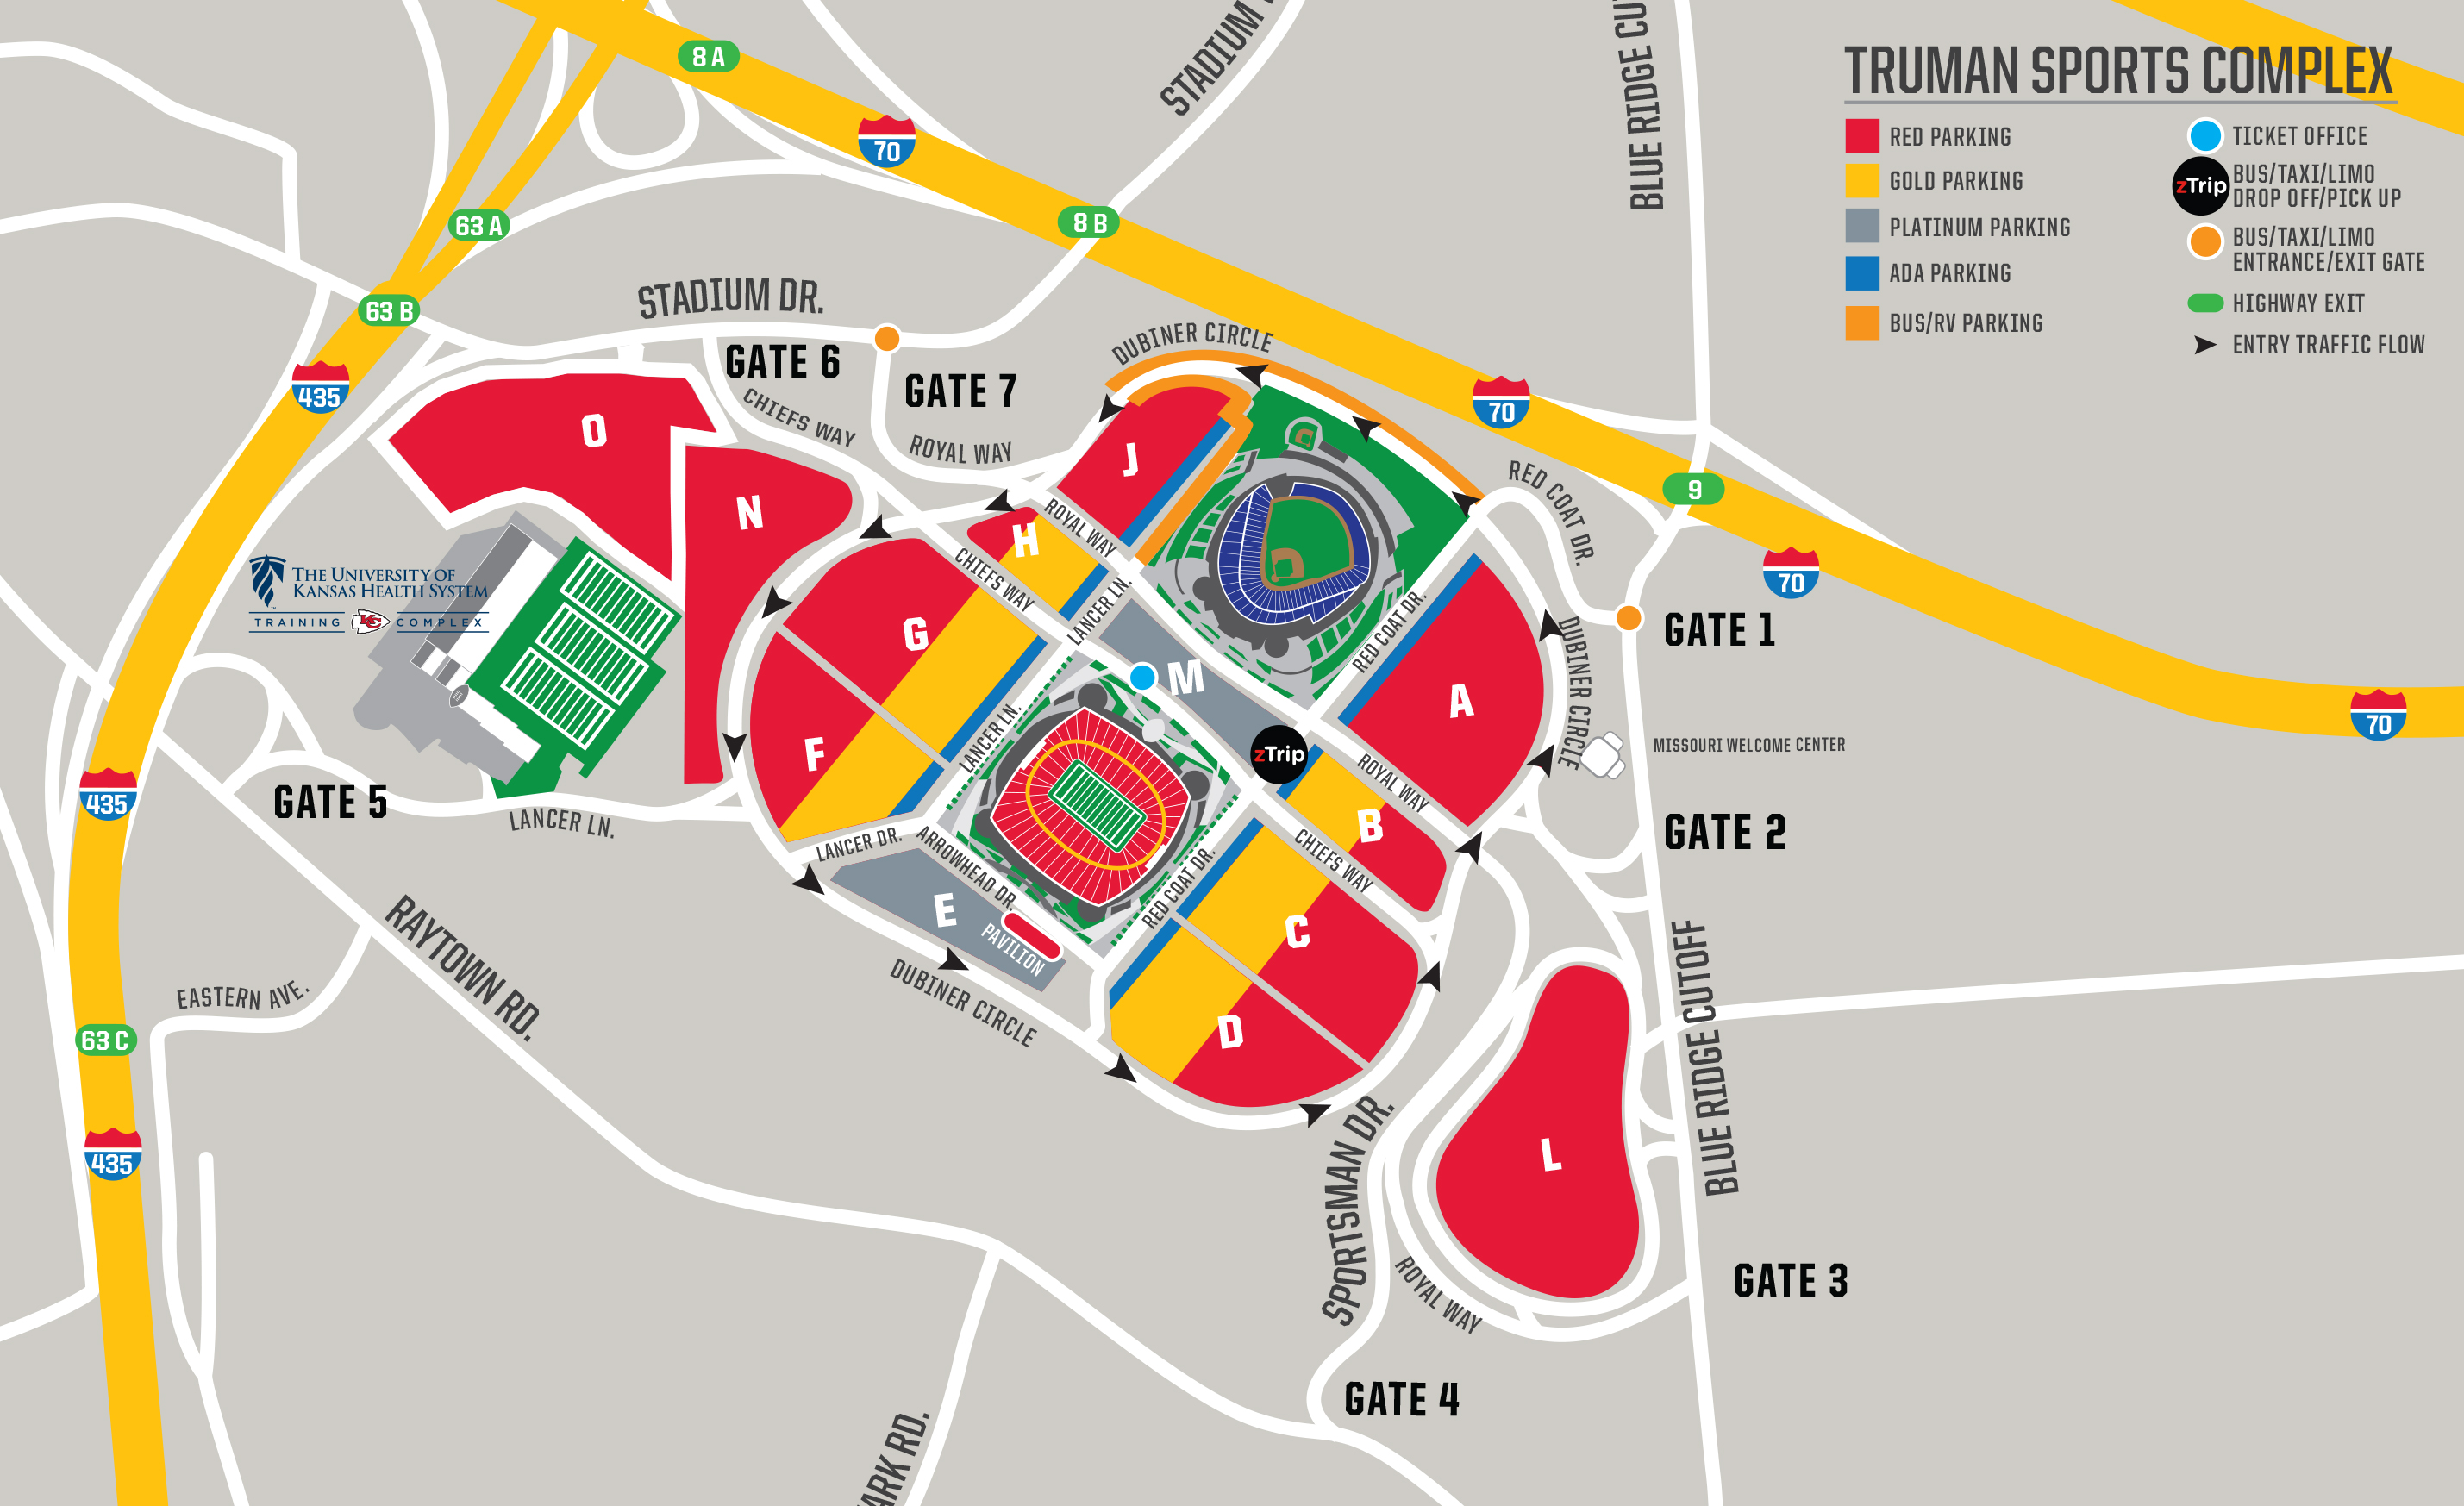 Chiefs Parking & Tailgating - Directions & Maps | Kansas City Chiefs on